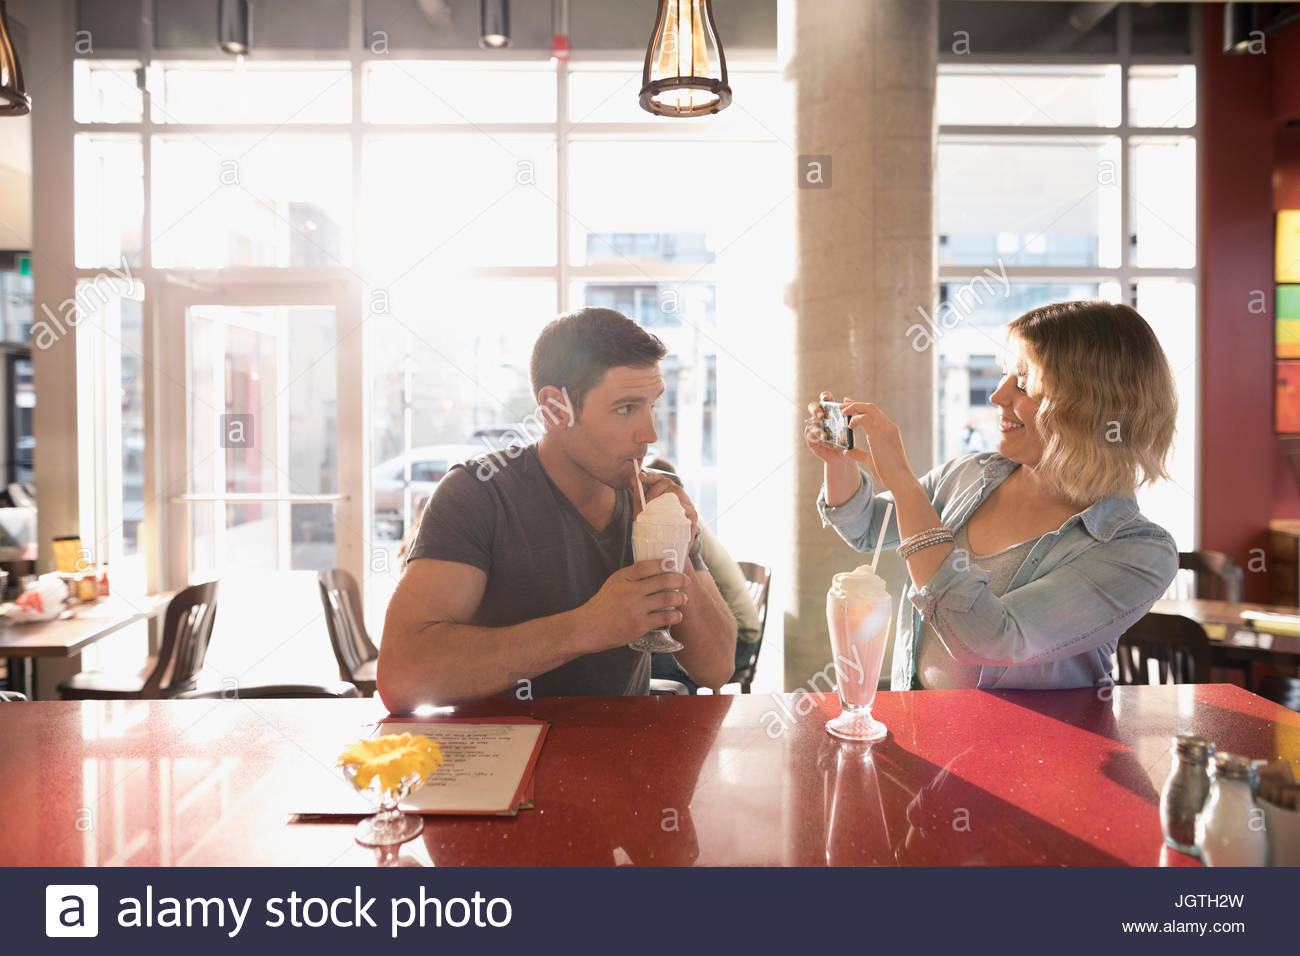 Girlfriend with camera phone photographing boyfriend drinking milkshake at diner counter - Stock Image